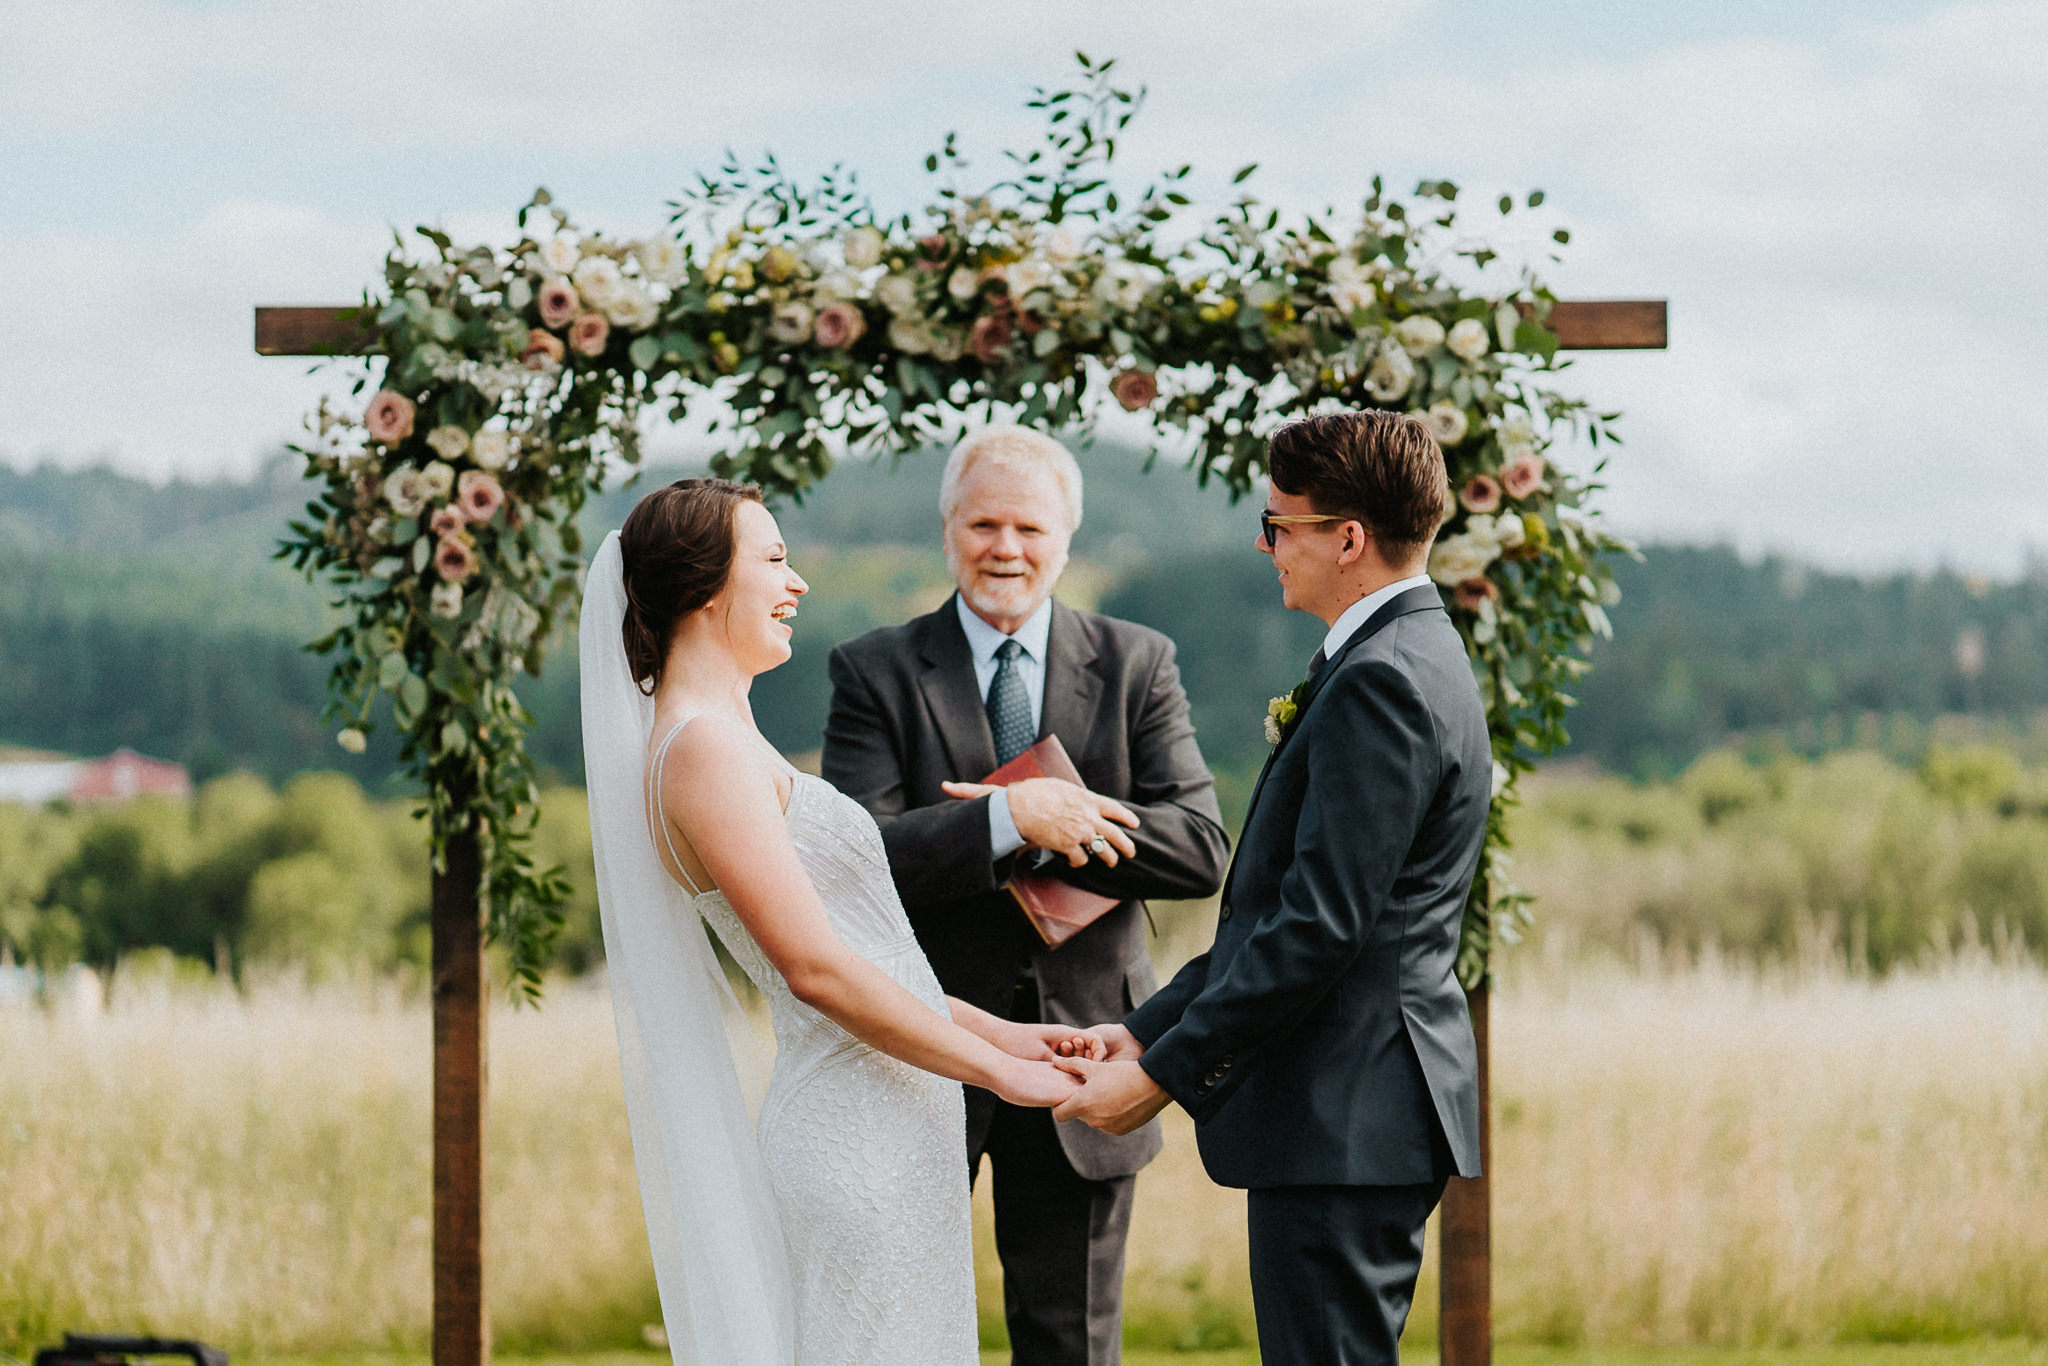 Ceremony Bride Groom Alter Water Oasis Alfred Tang Photography